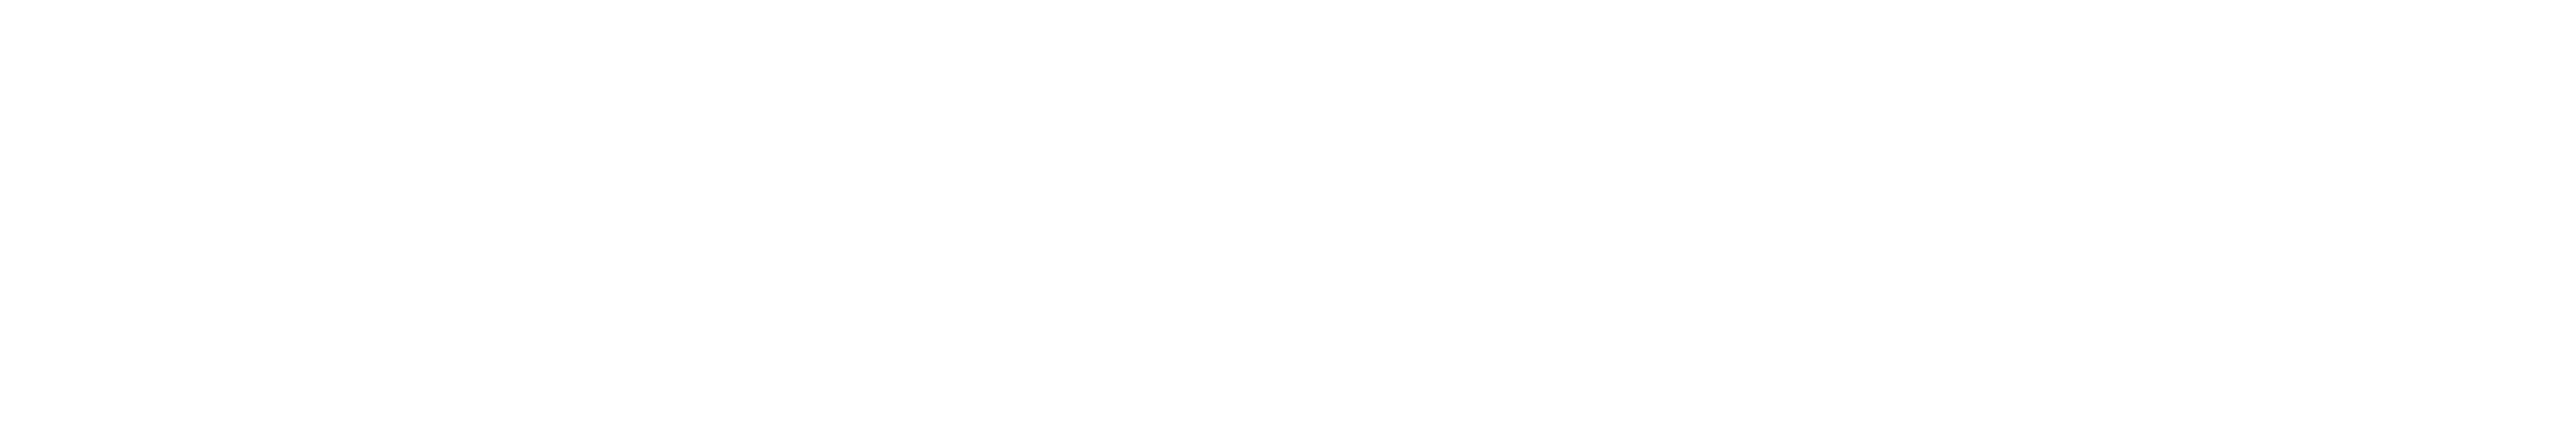 First National Real Estate Coastwide - Wyong Real Estate